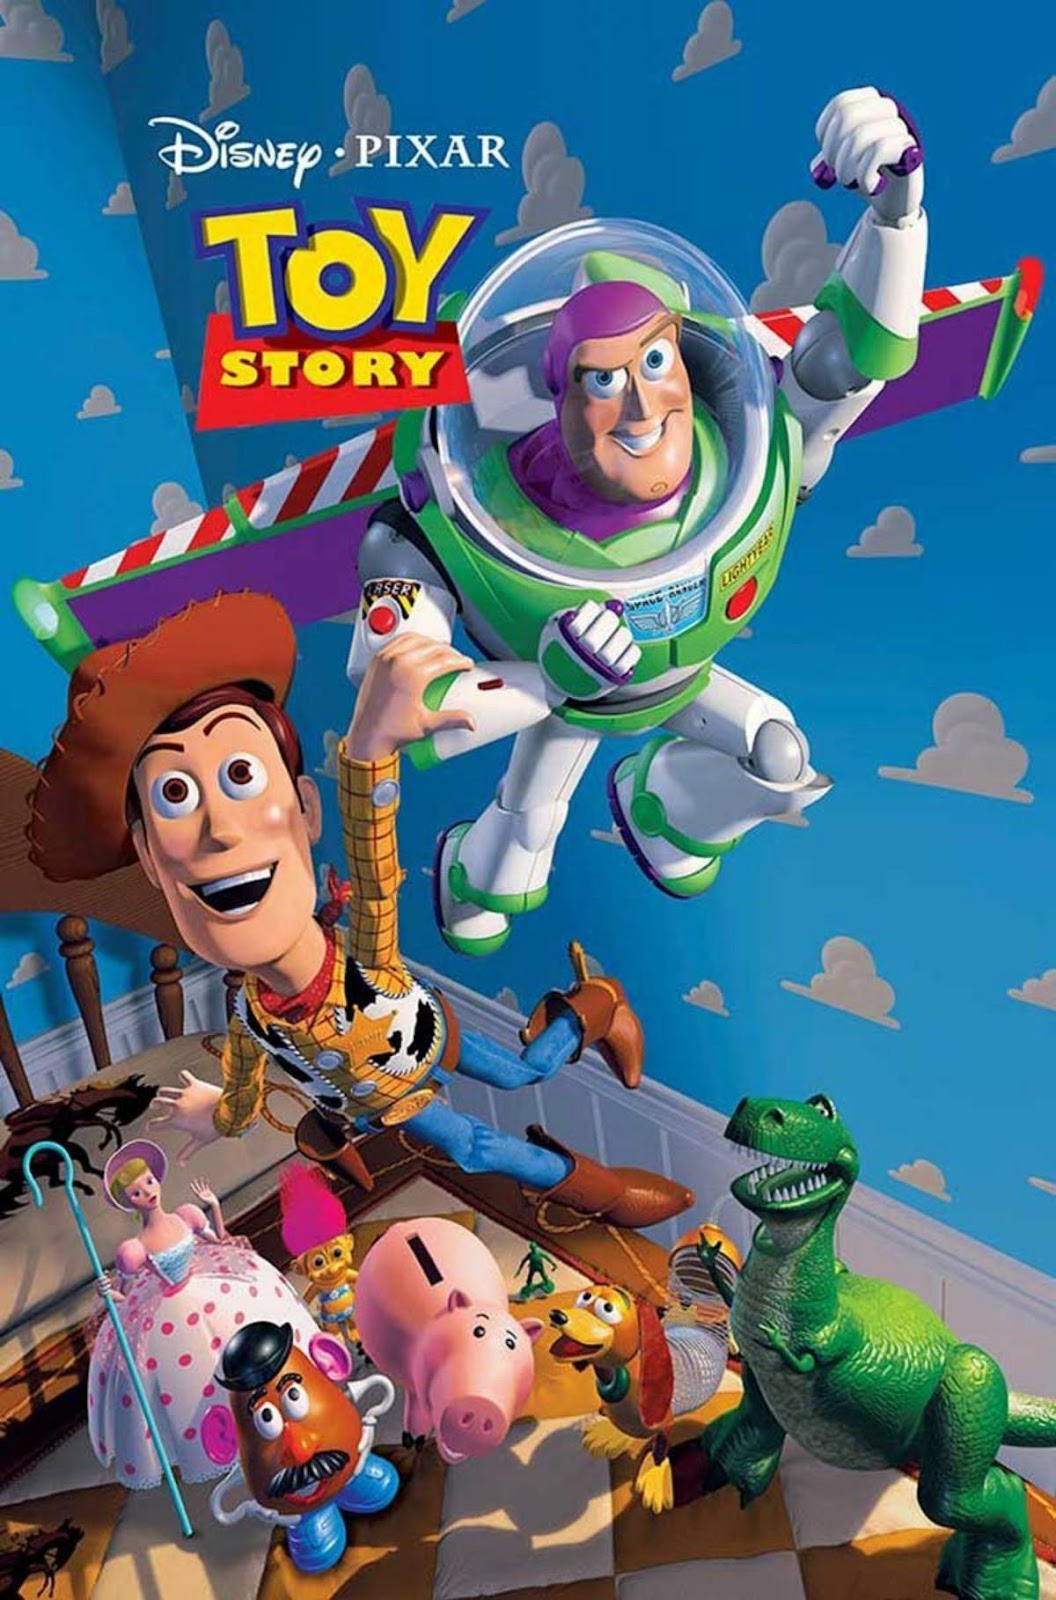 Woody, Buzz Lightyear and other living toys